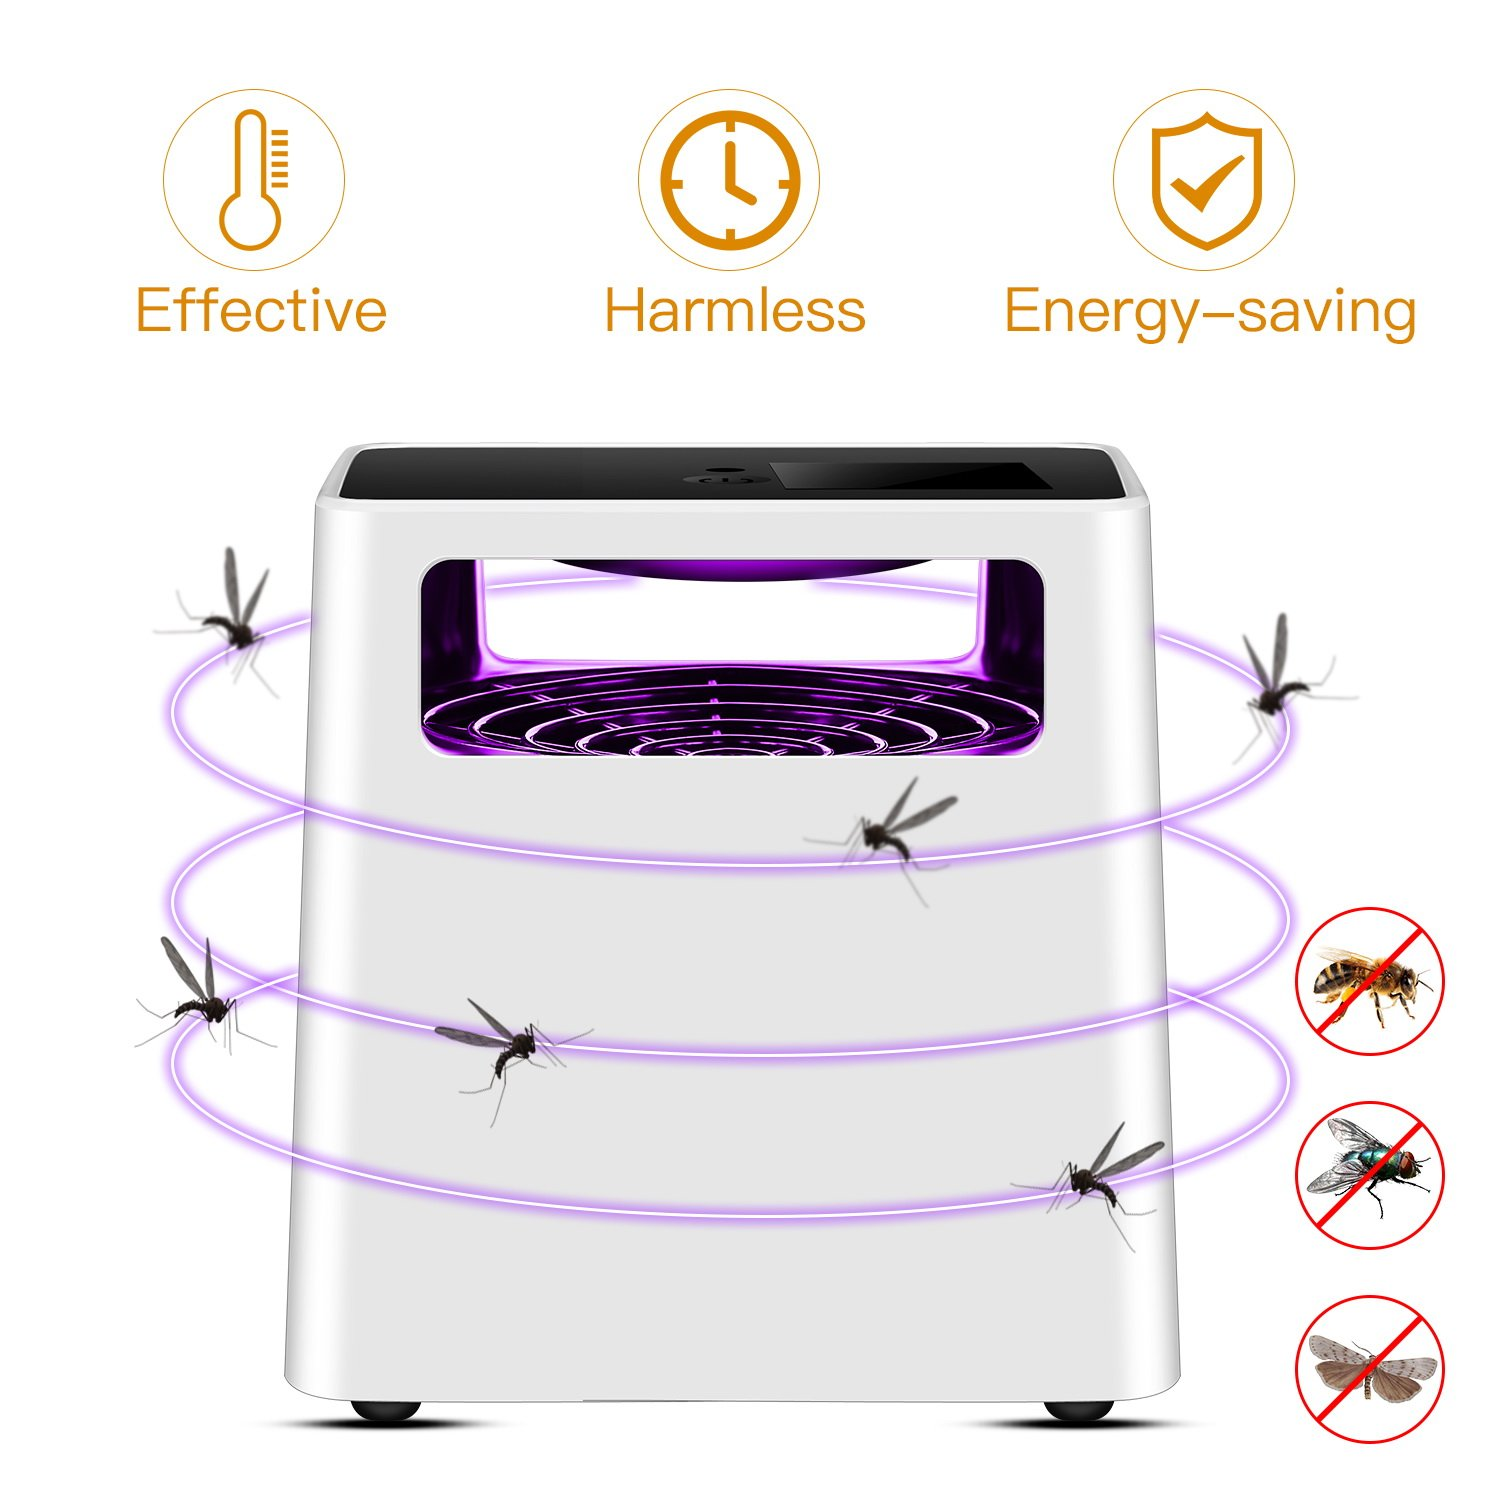 Indoor Mosquitos Trap, ALED LIGHT Flying Insects Killer Electronic Mosquito Trap Lamp Poison-Free Bugs Zappers Effective and Intelligent Mosquitos Catcher Non-toxic Non-Chemical, Pets and Humans friendly LUXONIC